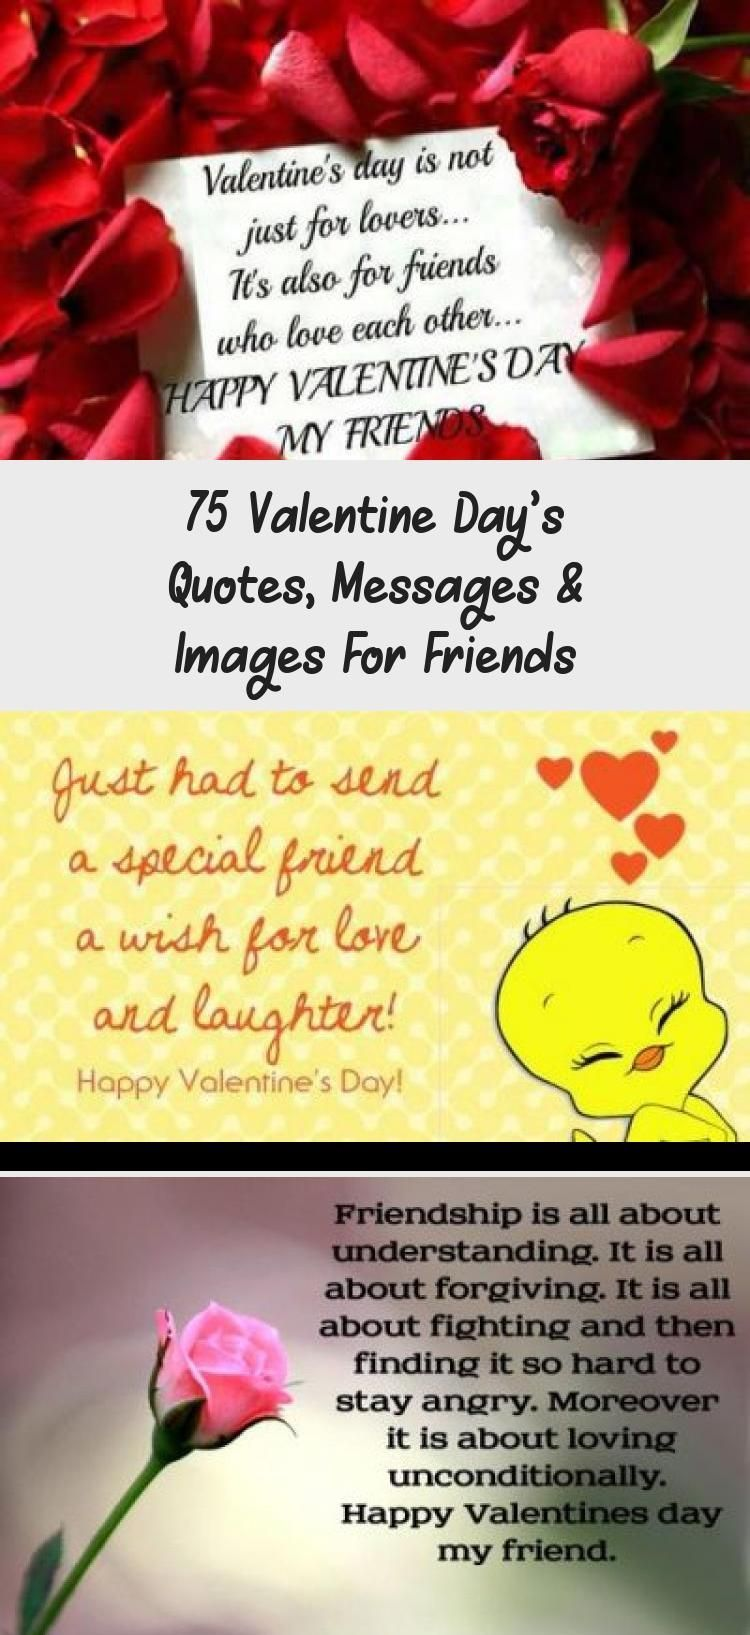 Funny Valentine Day S Quotes For Friends Valentinesdayquoteslongdistance In 2020 Funny Valentines Day Quotes Valentines Day Quotes For Friends Valentine S Day Quotes